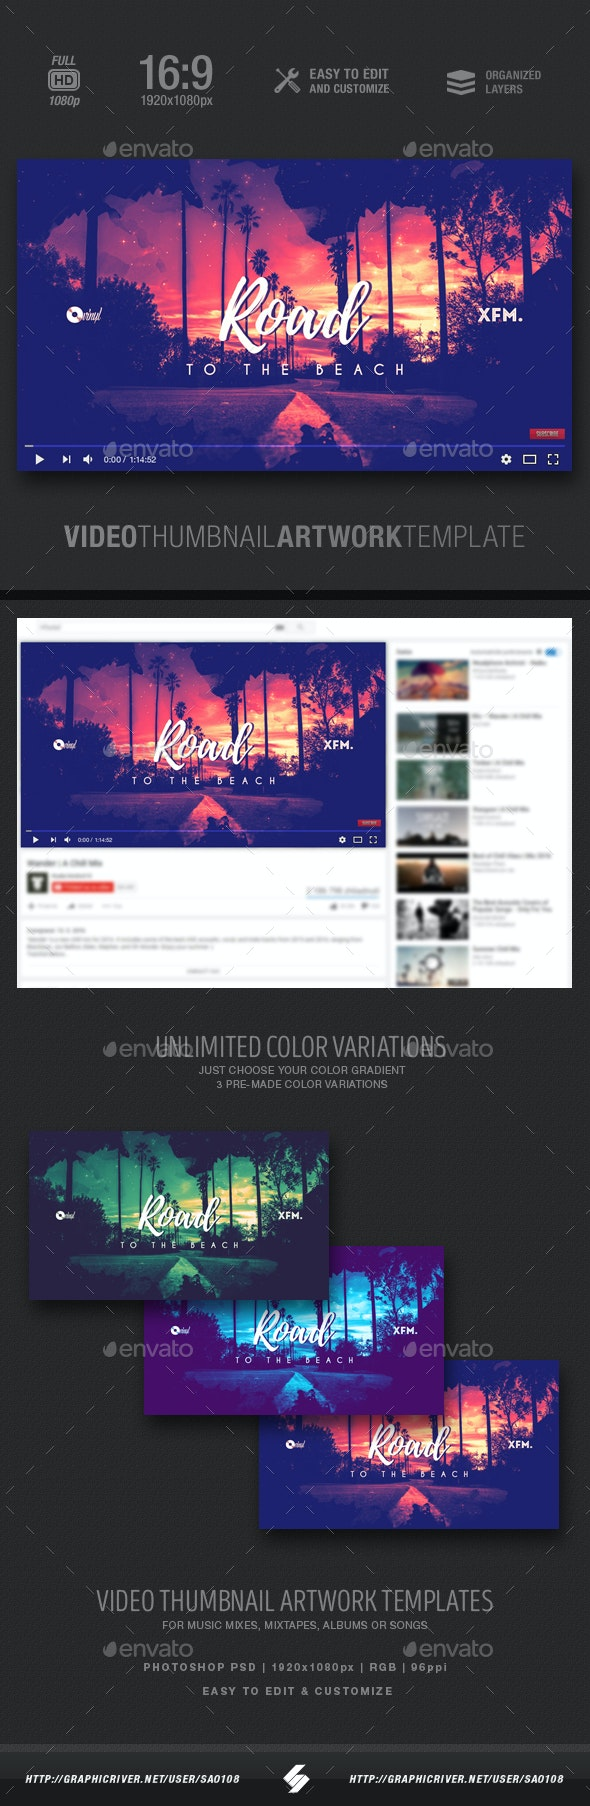 Road To The Beach - Music Video Thumbnail Artwork Template - YouTube Social Media